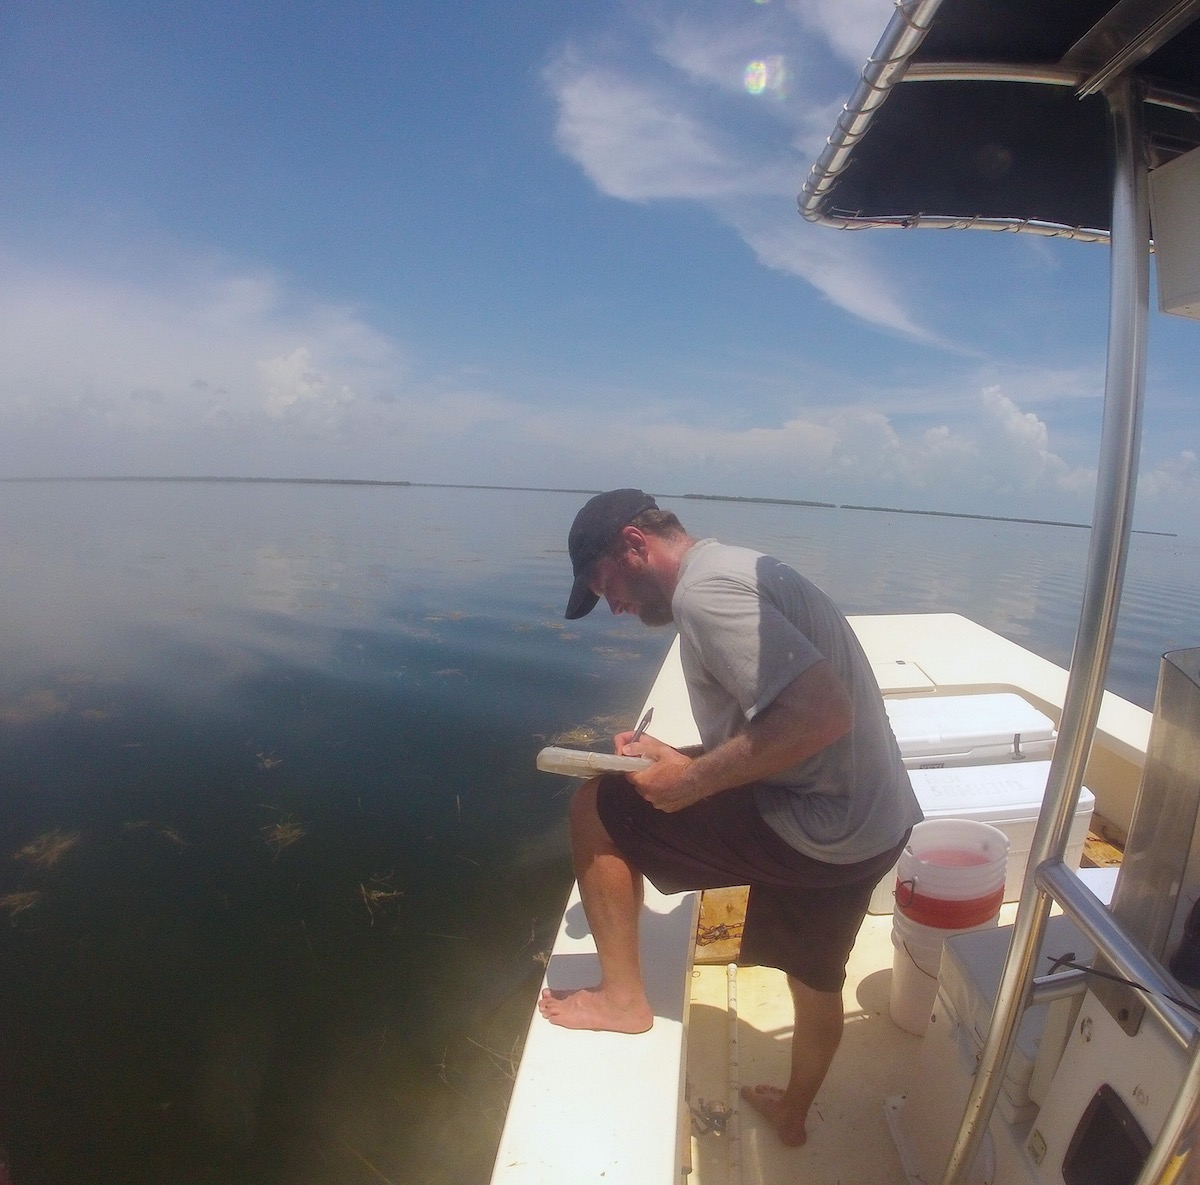 AOML scientist assesses the seagrass cover during a survey in Florida Bay. Image credit: NOAA